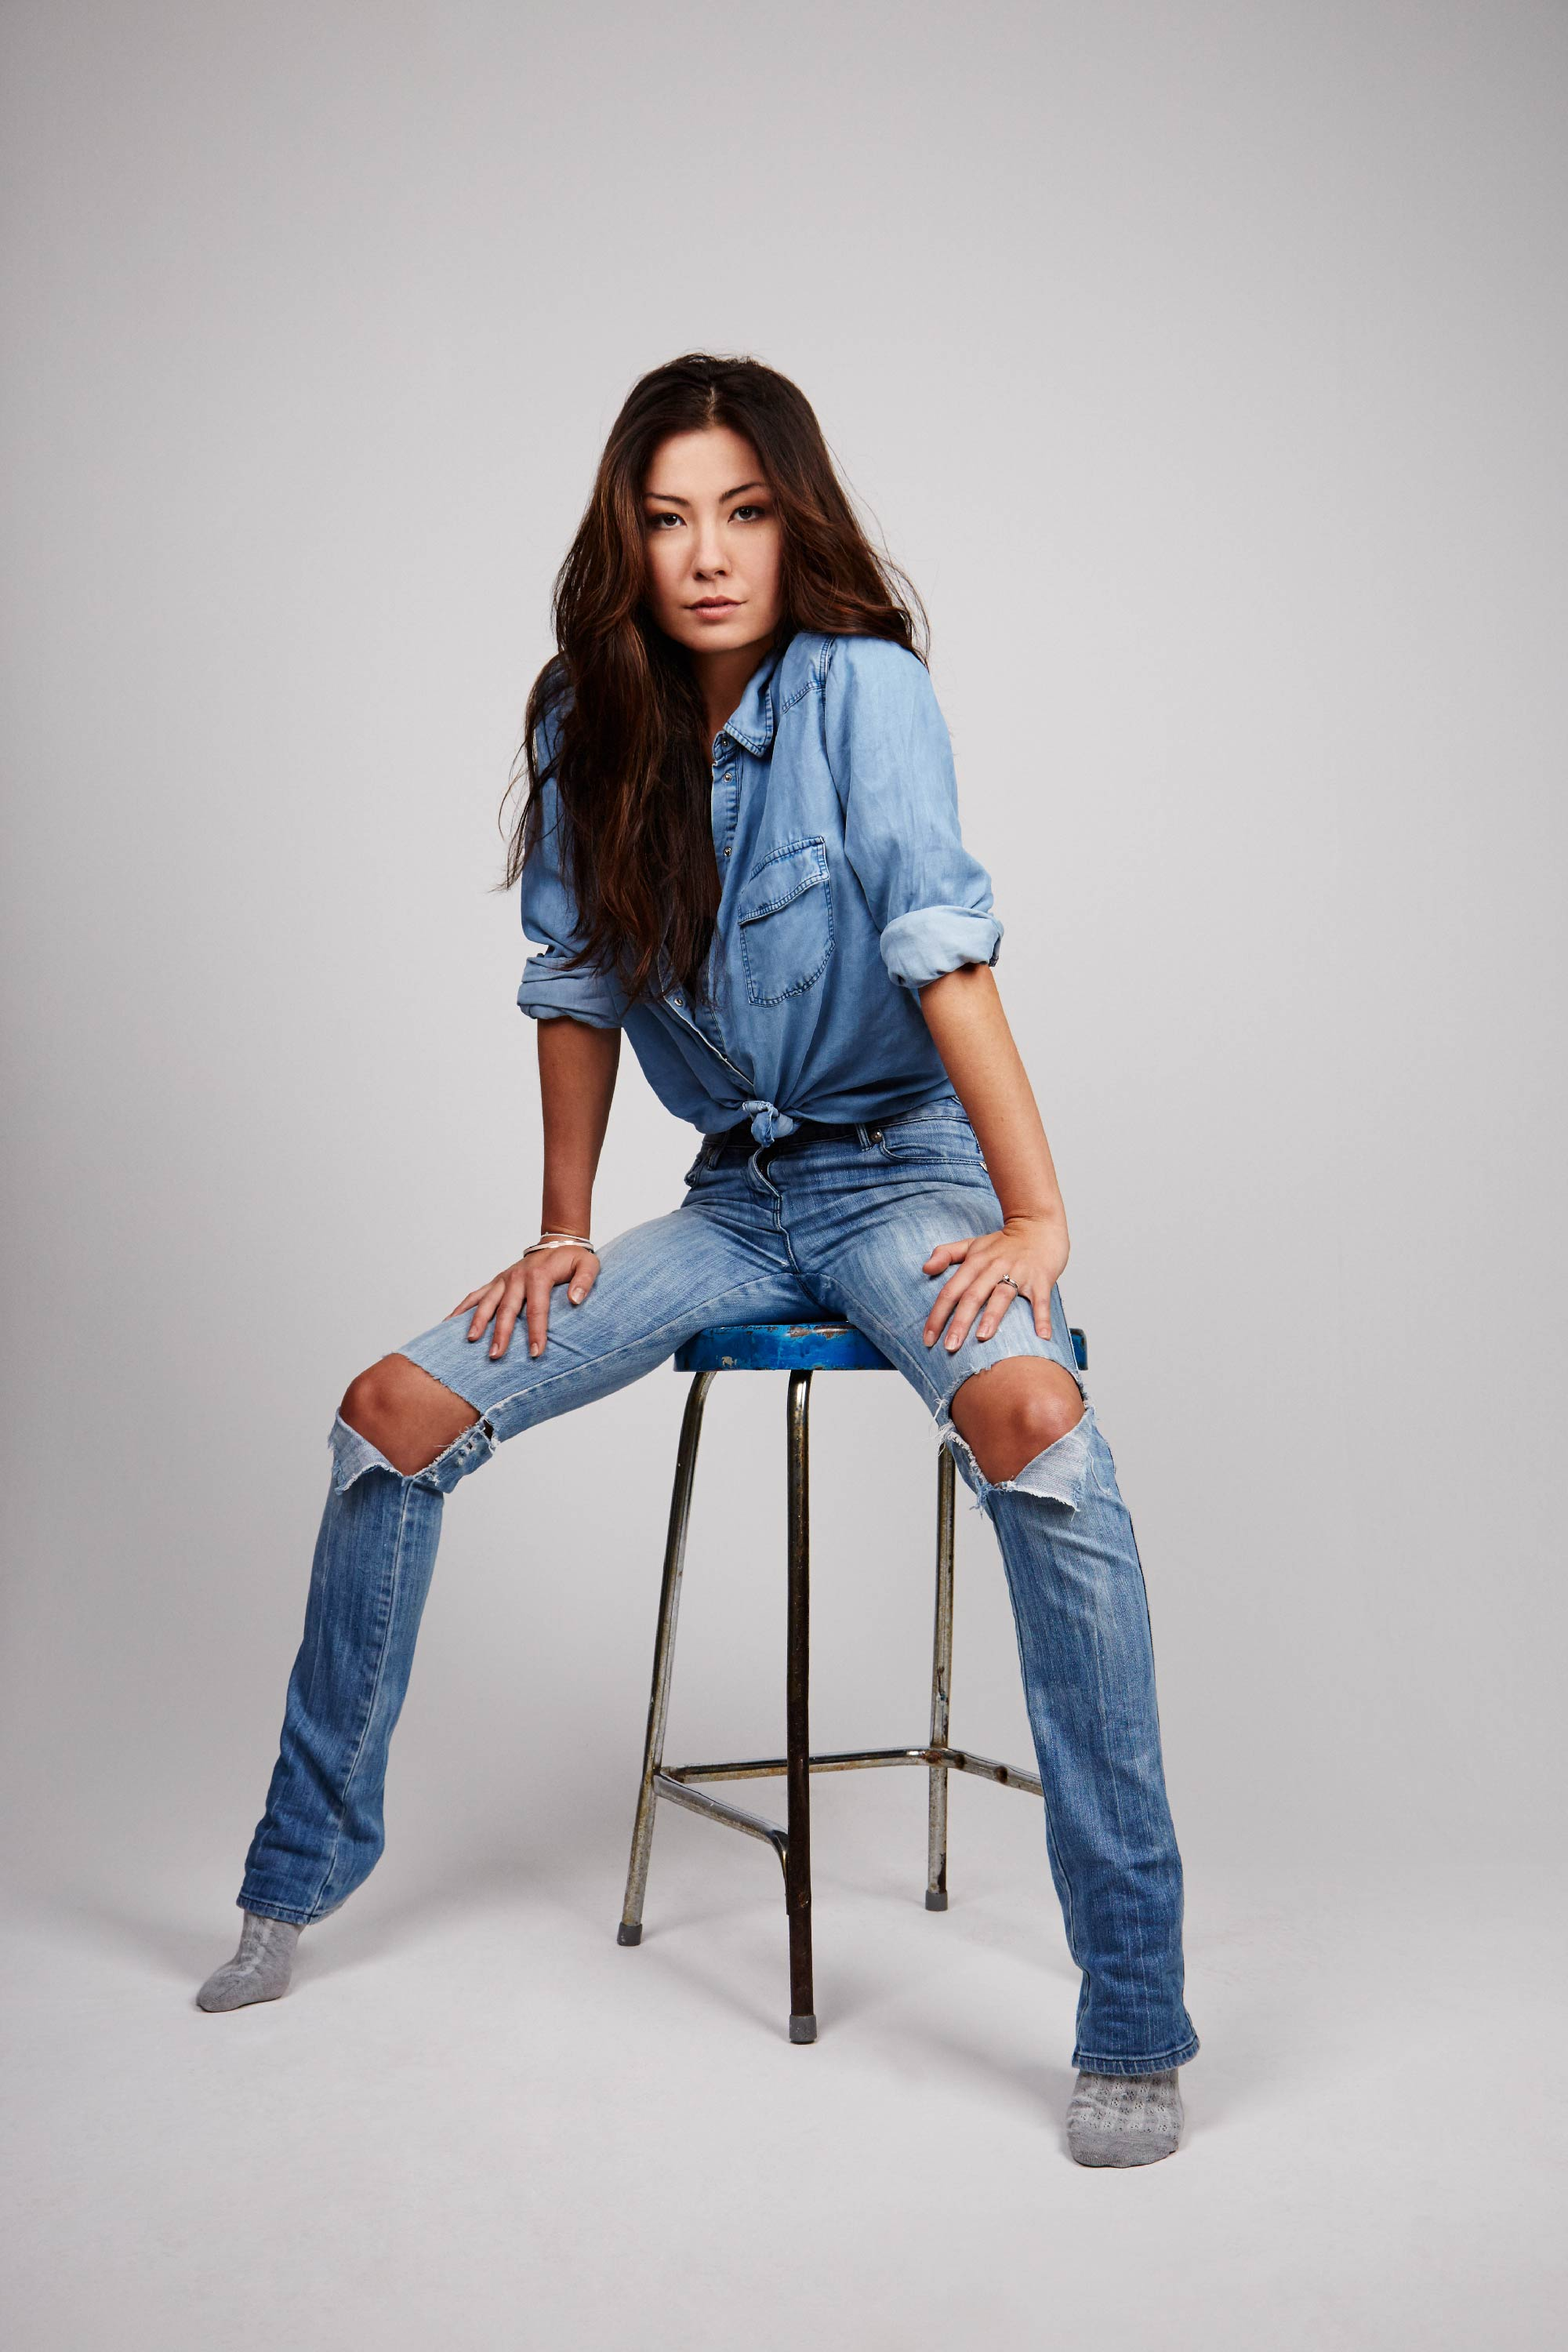 Makeup for London fashion shoot. Woman in double denim sits on top of stool.